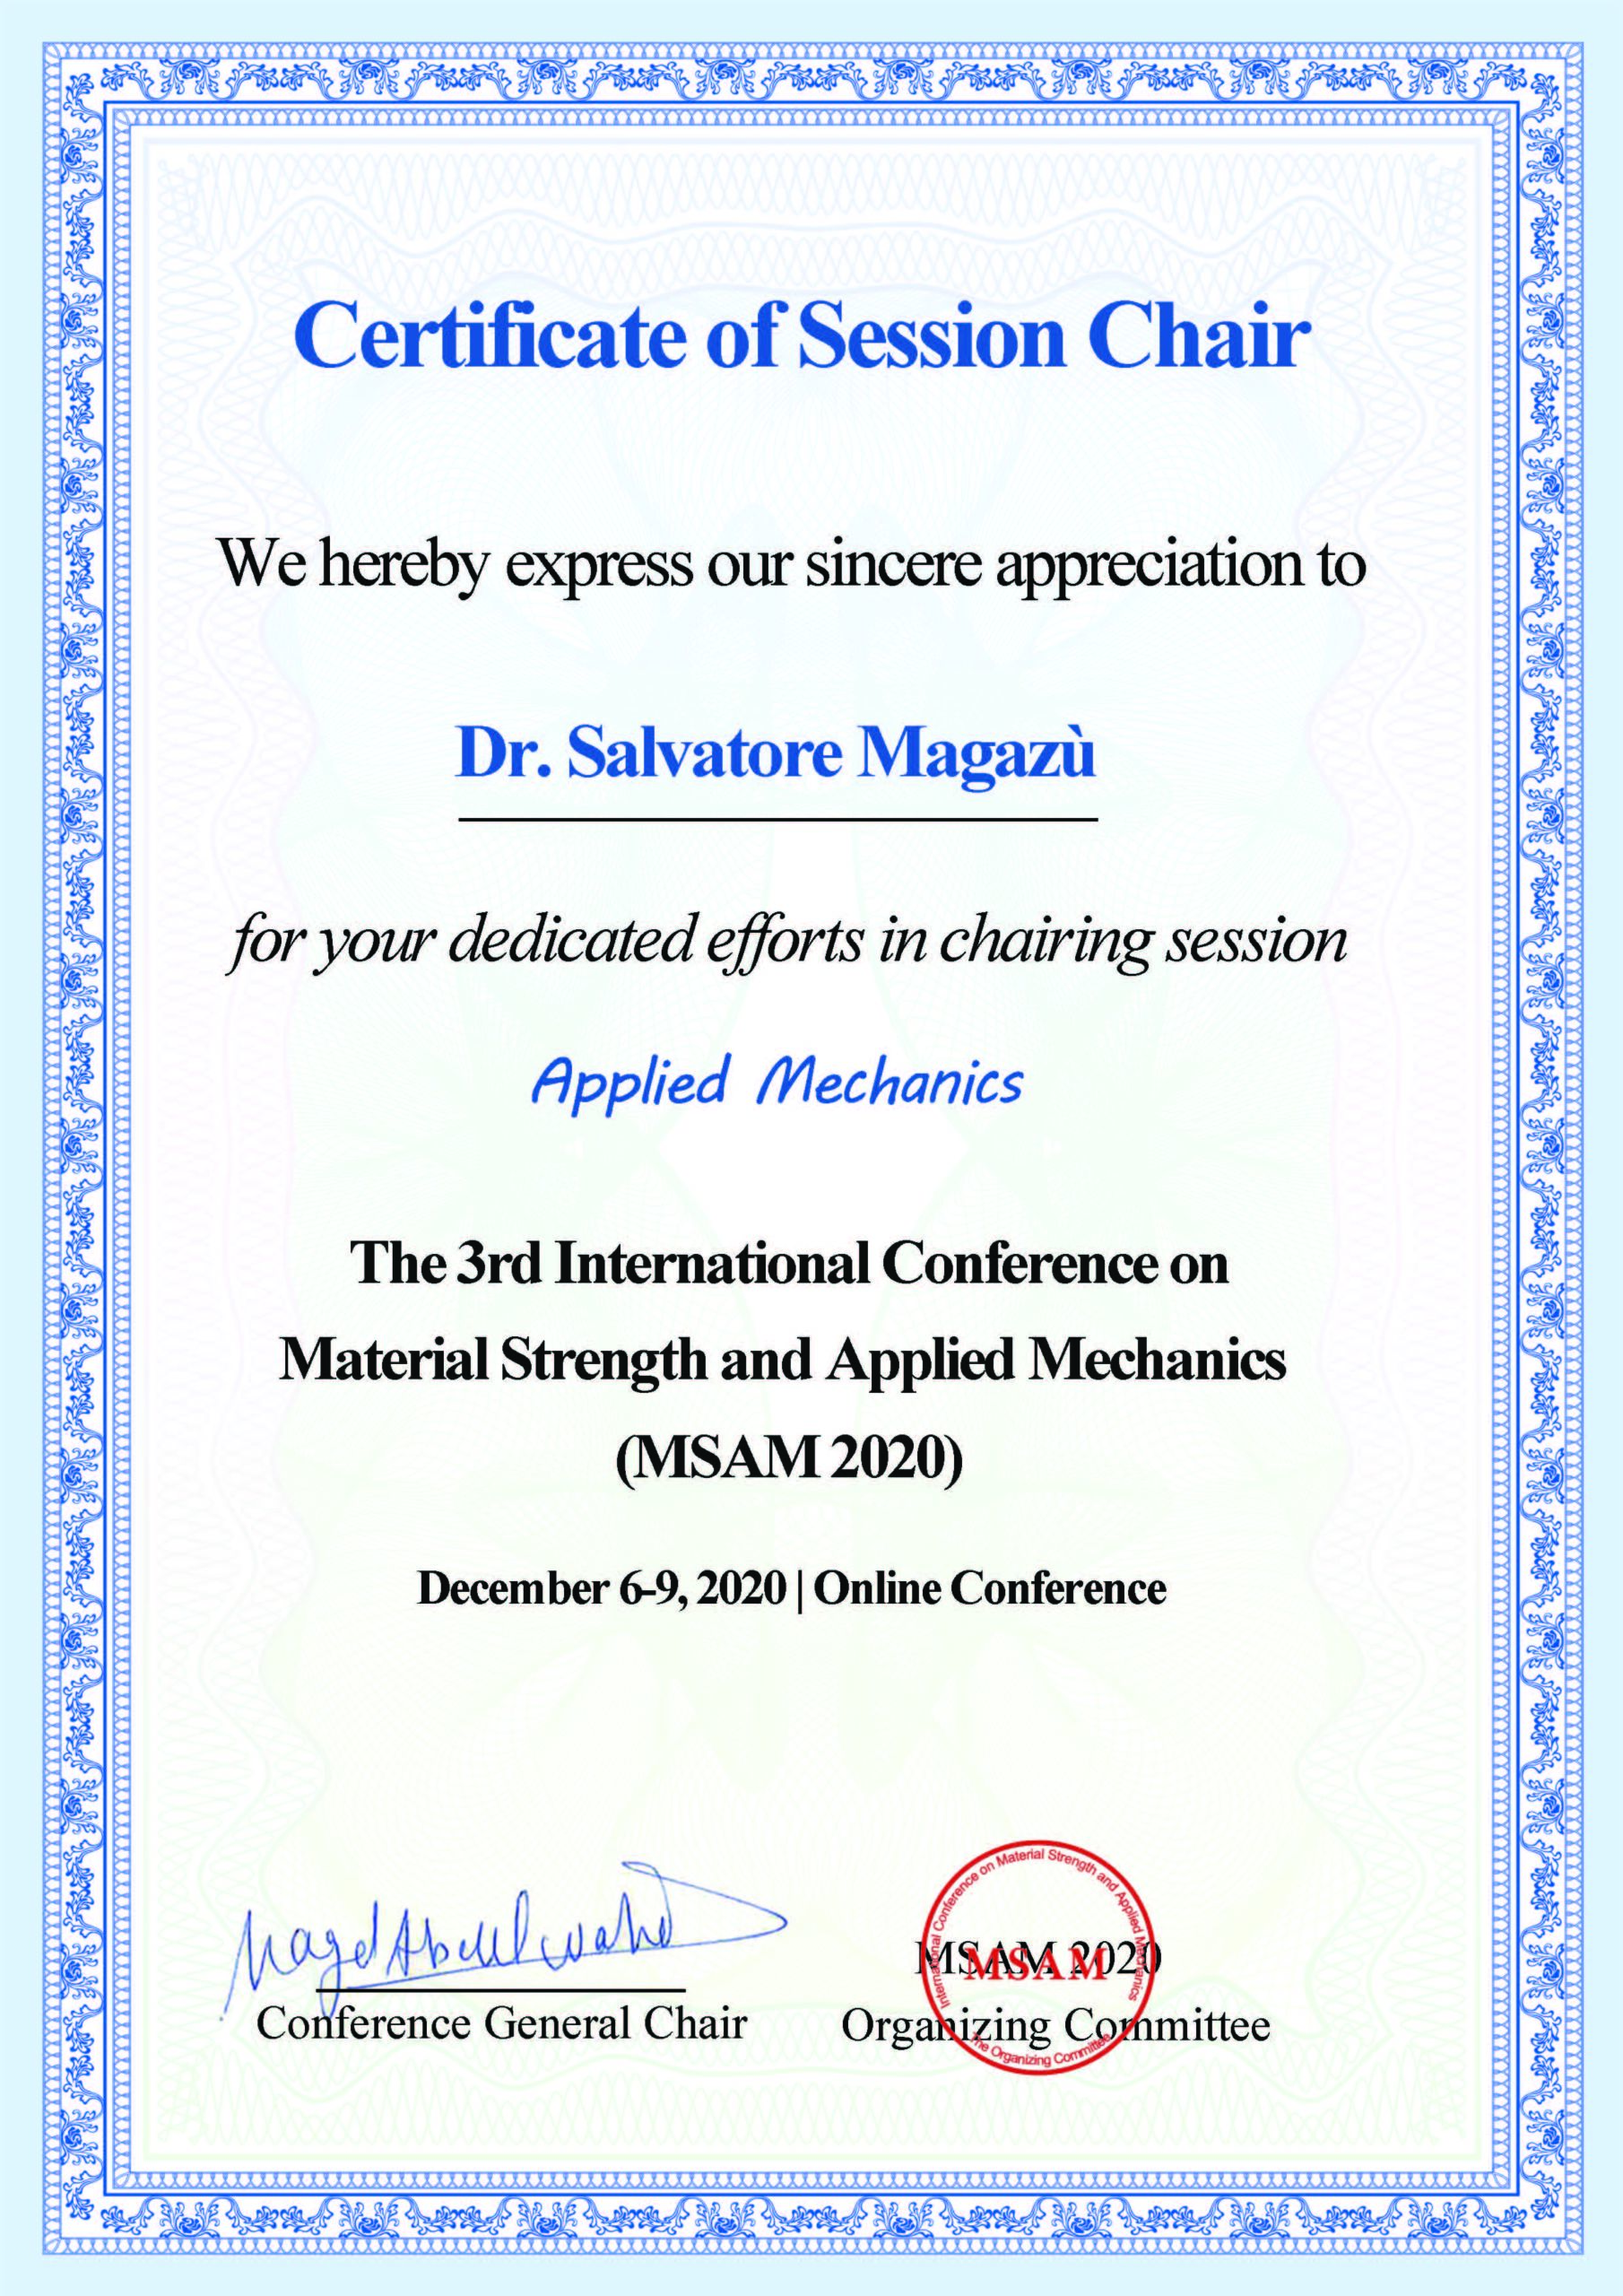 Certificate Conference on Material Strenght and Applied Mechanics